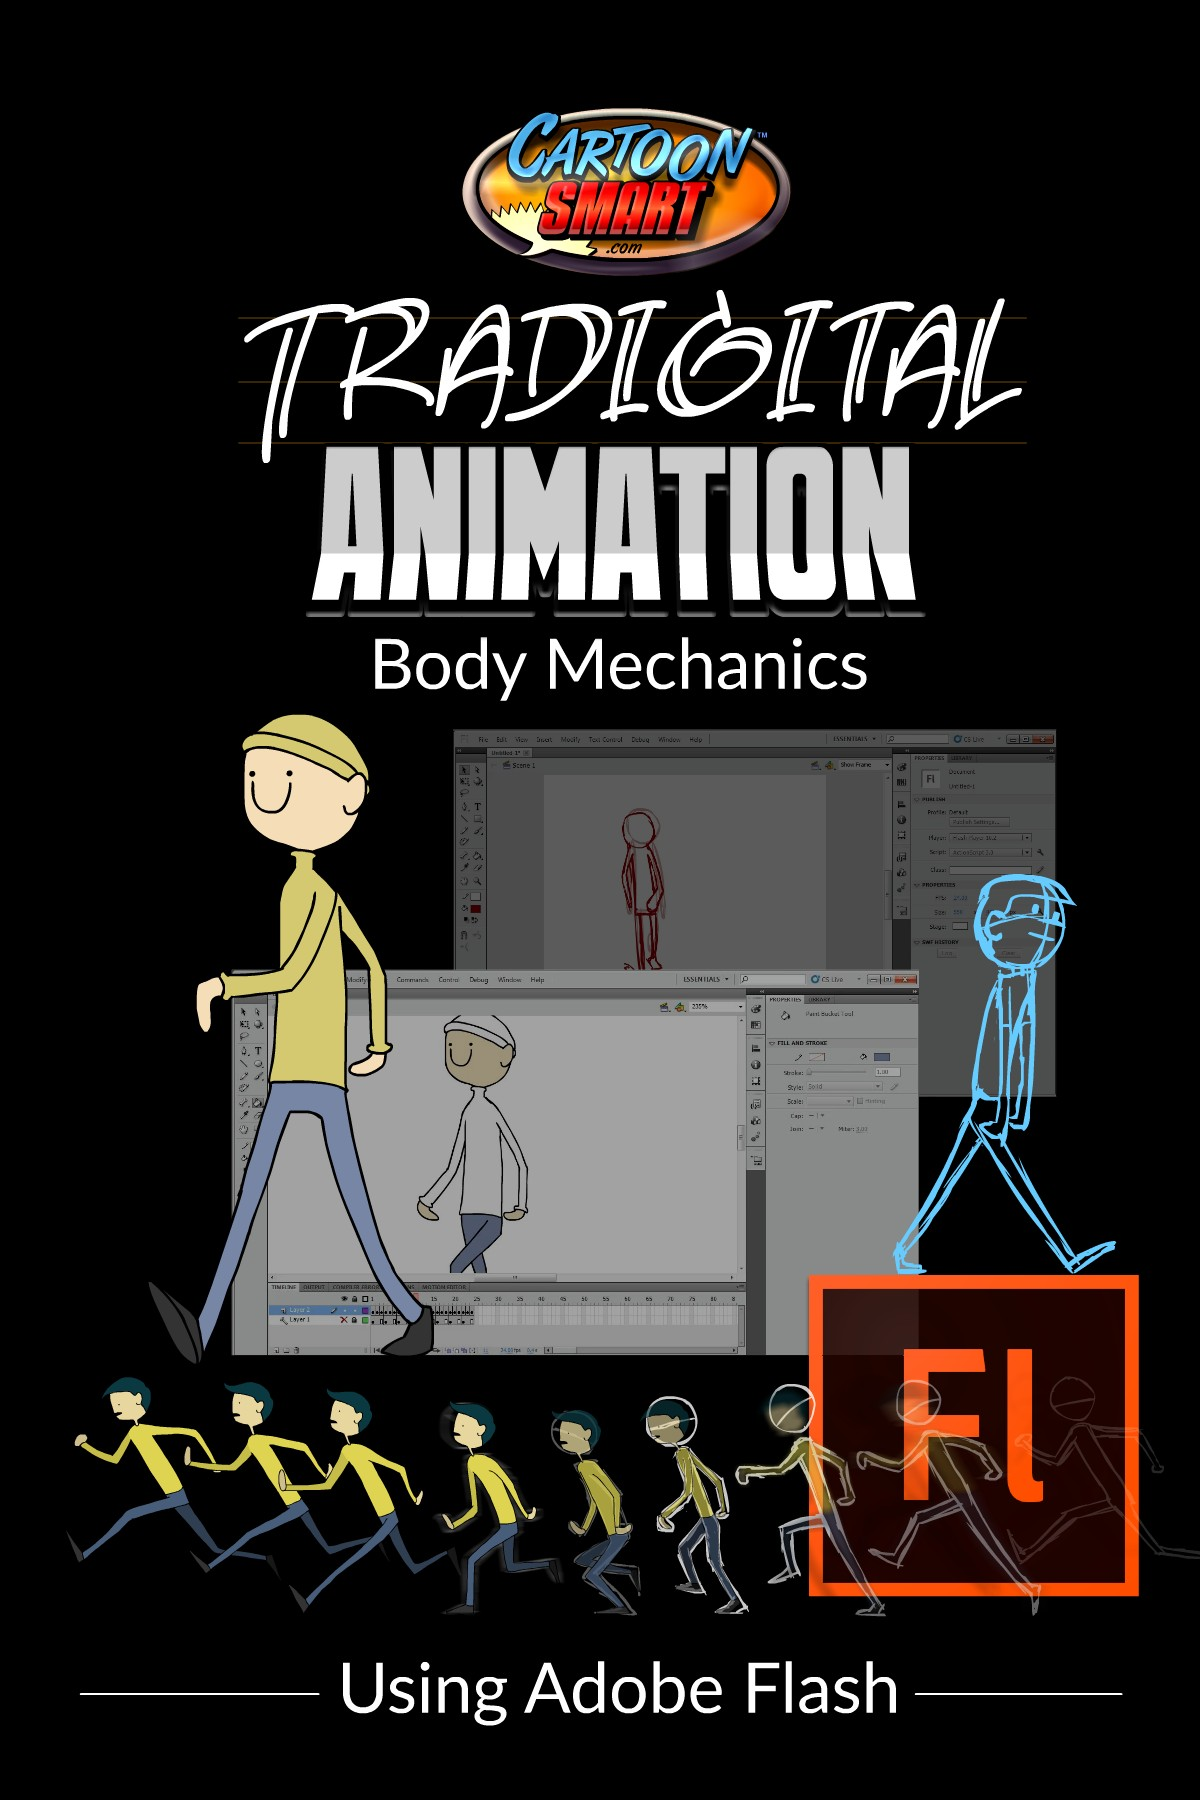 Tradigital Animation Tutorial - Body Mechanics